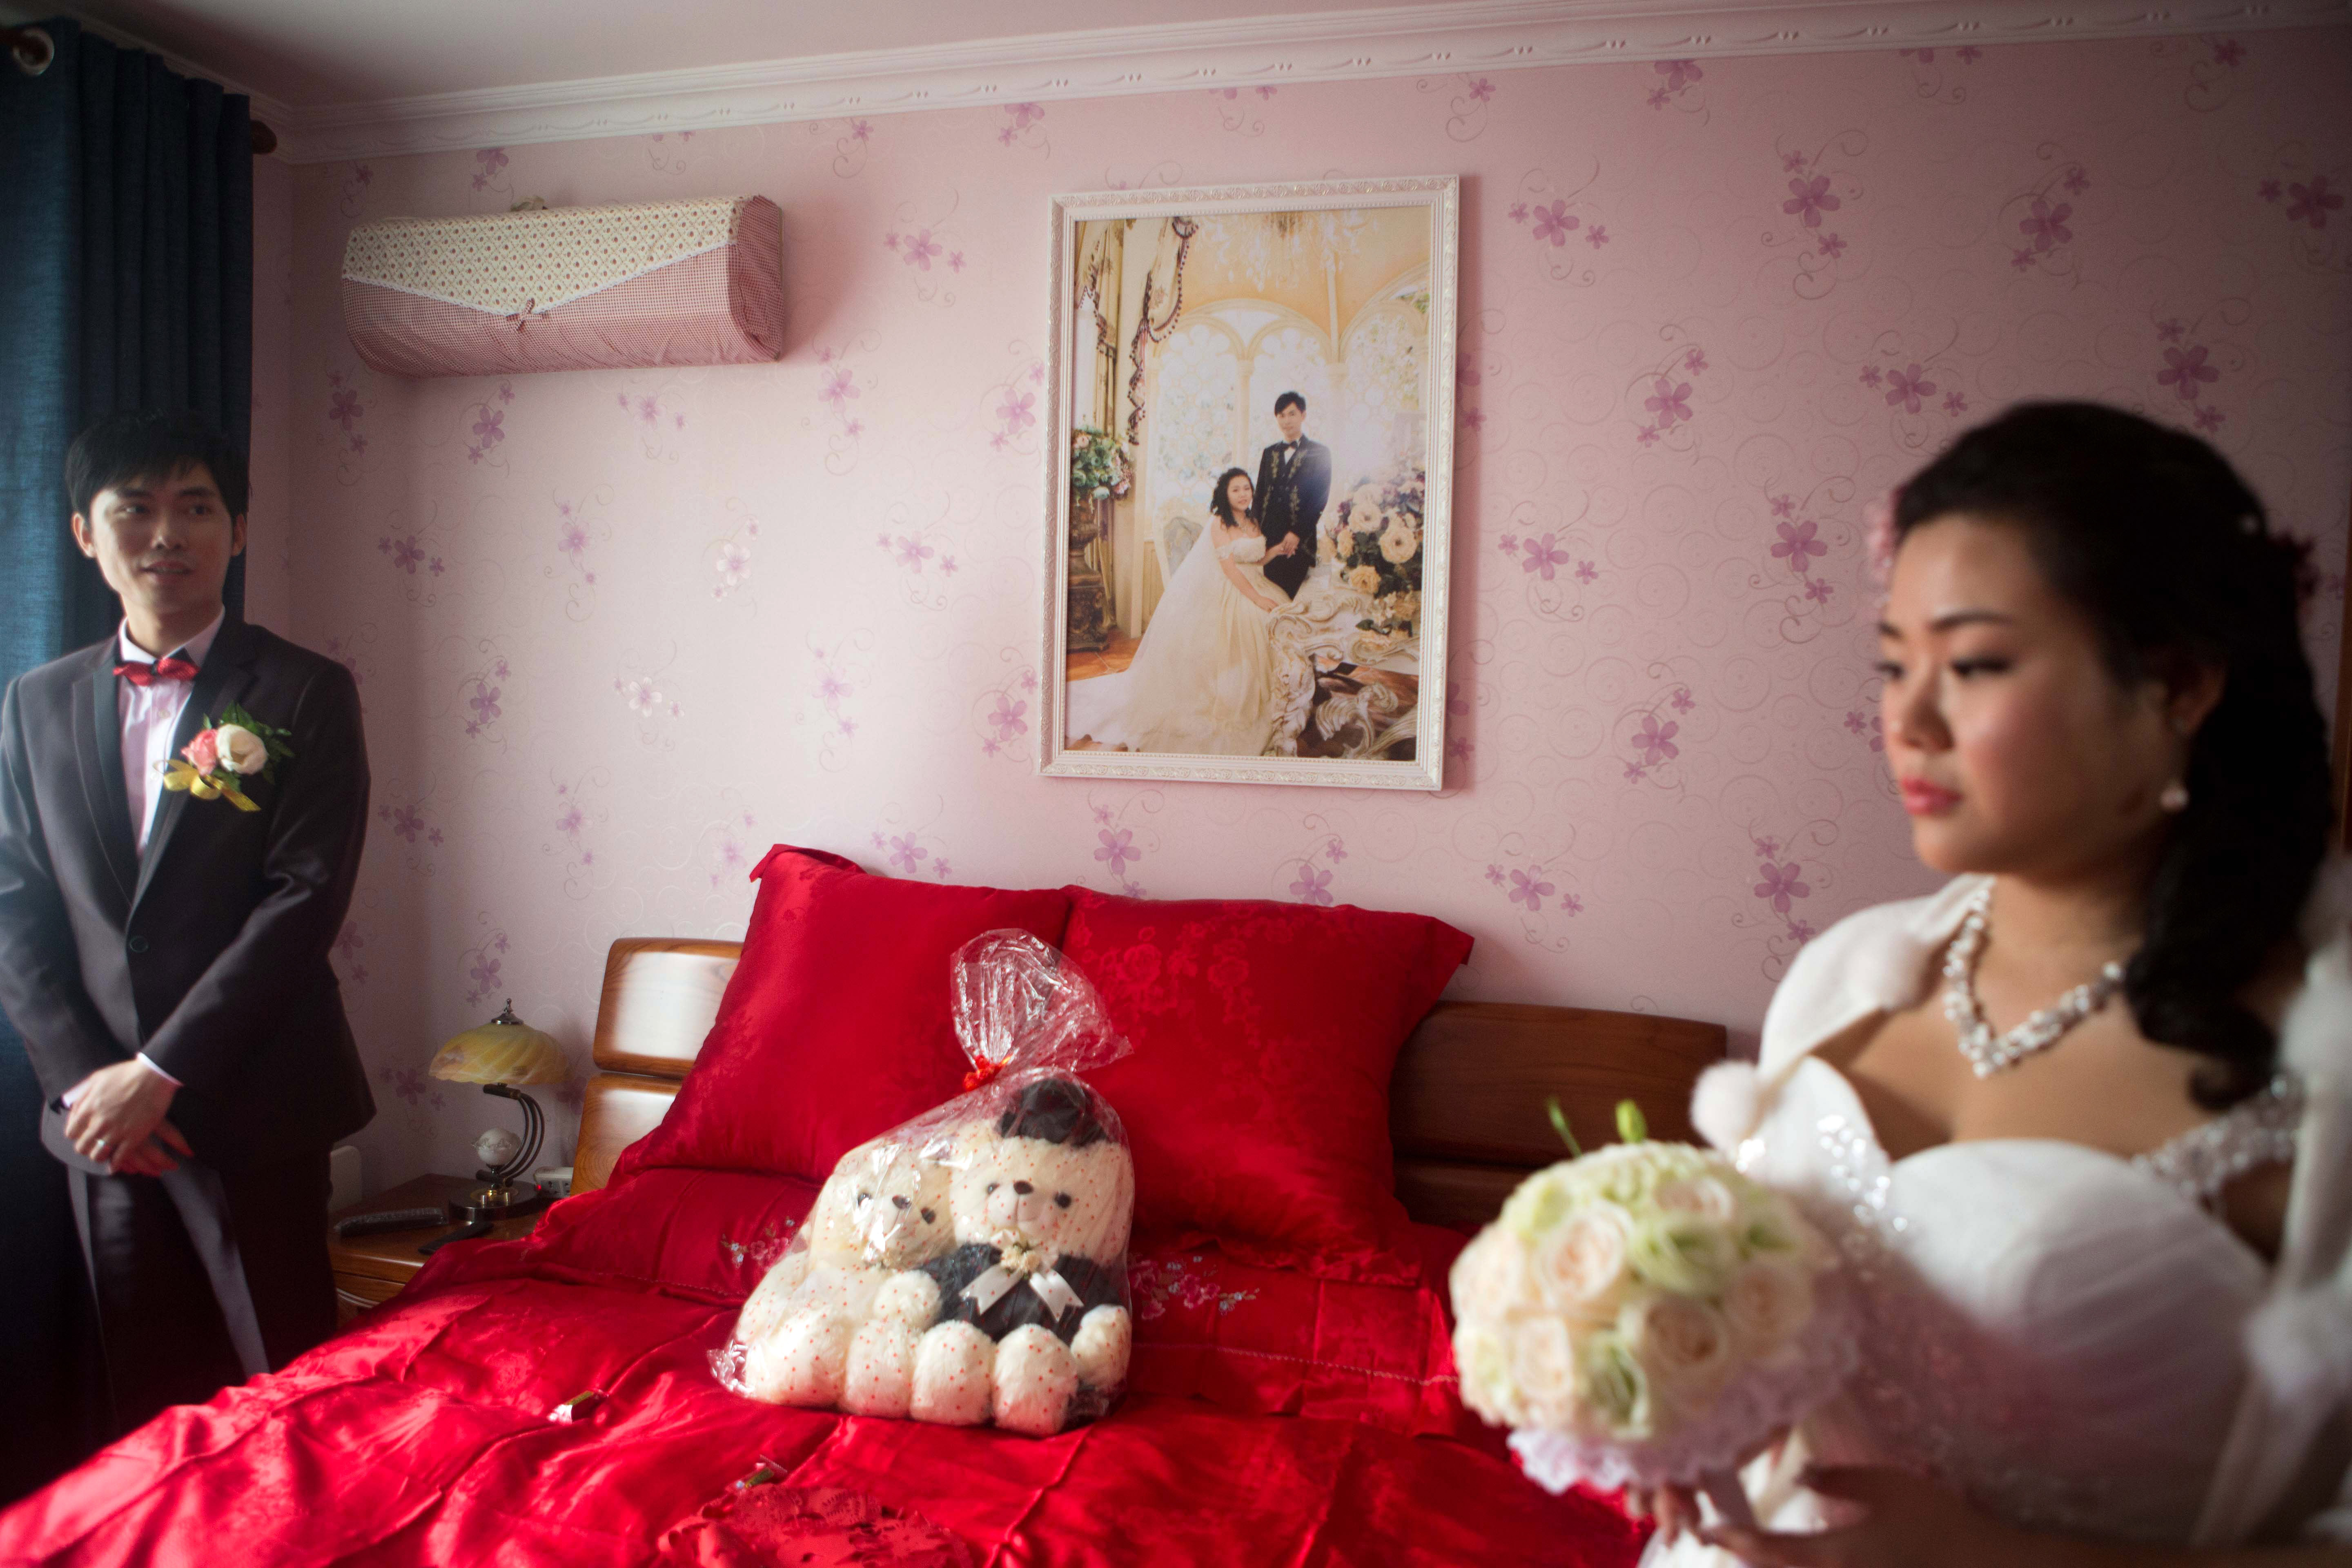 A pre-wedding photo hangs on the wall at the future apartment of Xia Jiachen and Xu Chuyun in December 2015. They visit the apartment during their wedding ceremony.